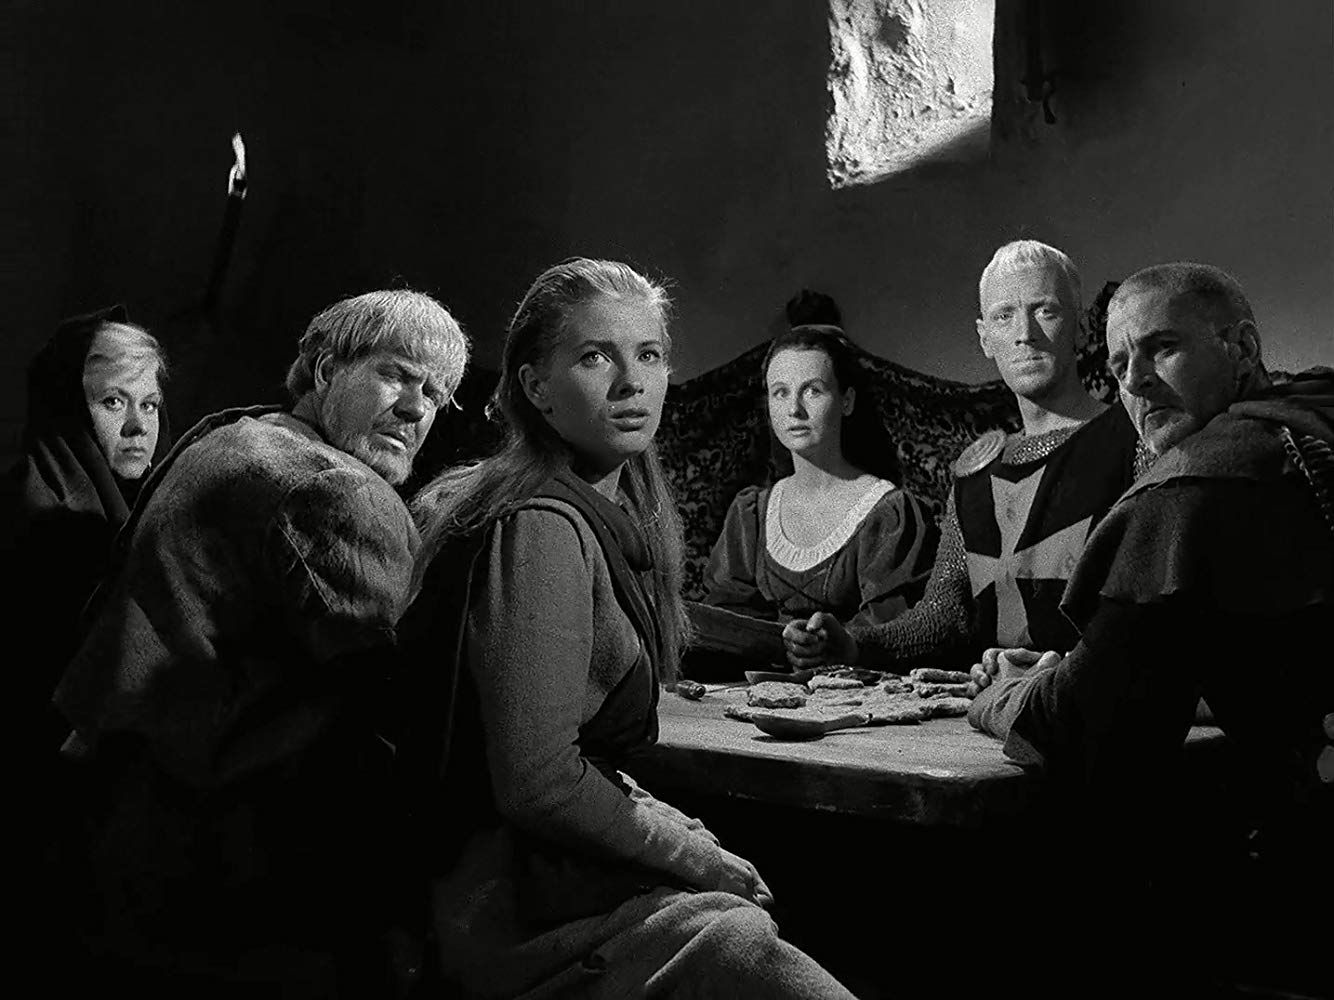 The Movies That Matter The Most To Me The seventh seal